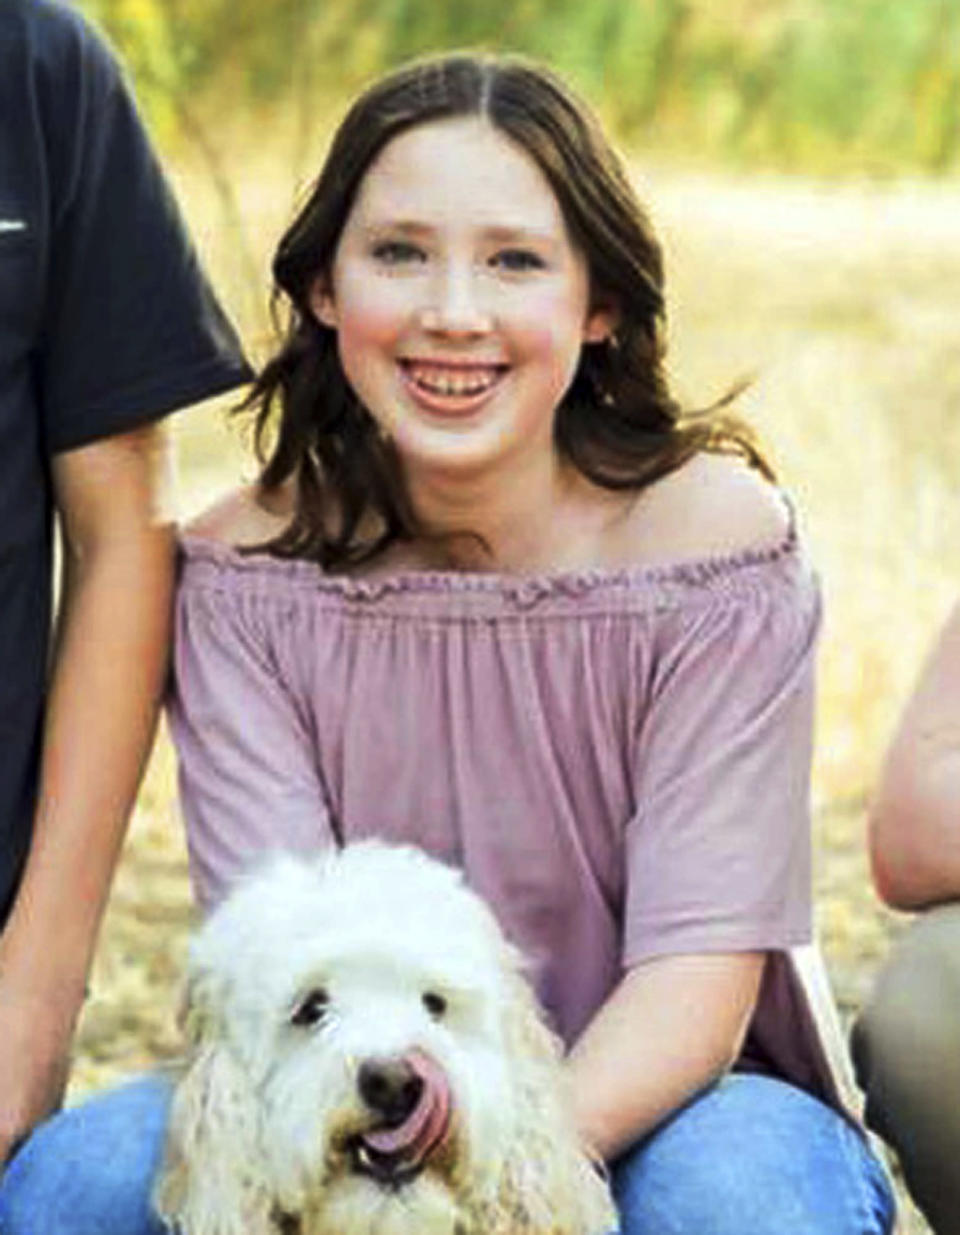 This undated photo provided by the Muehlberger family shows Gracie Anne Muehlberger, 15. She is one of two students who died when Nathaniel Tennosuke Berhow opened fire at Saugus High School in Santa Clarita, Calif., Thursday, Nov. 14, 2019. Berhow, 16, planned the attack at the Southern California high school, but investigators were so far unable to find out why he brought a gun to campus and opened fire, authorities said Friday. (Muehlberger family via AP)